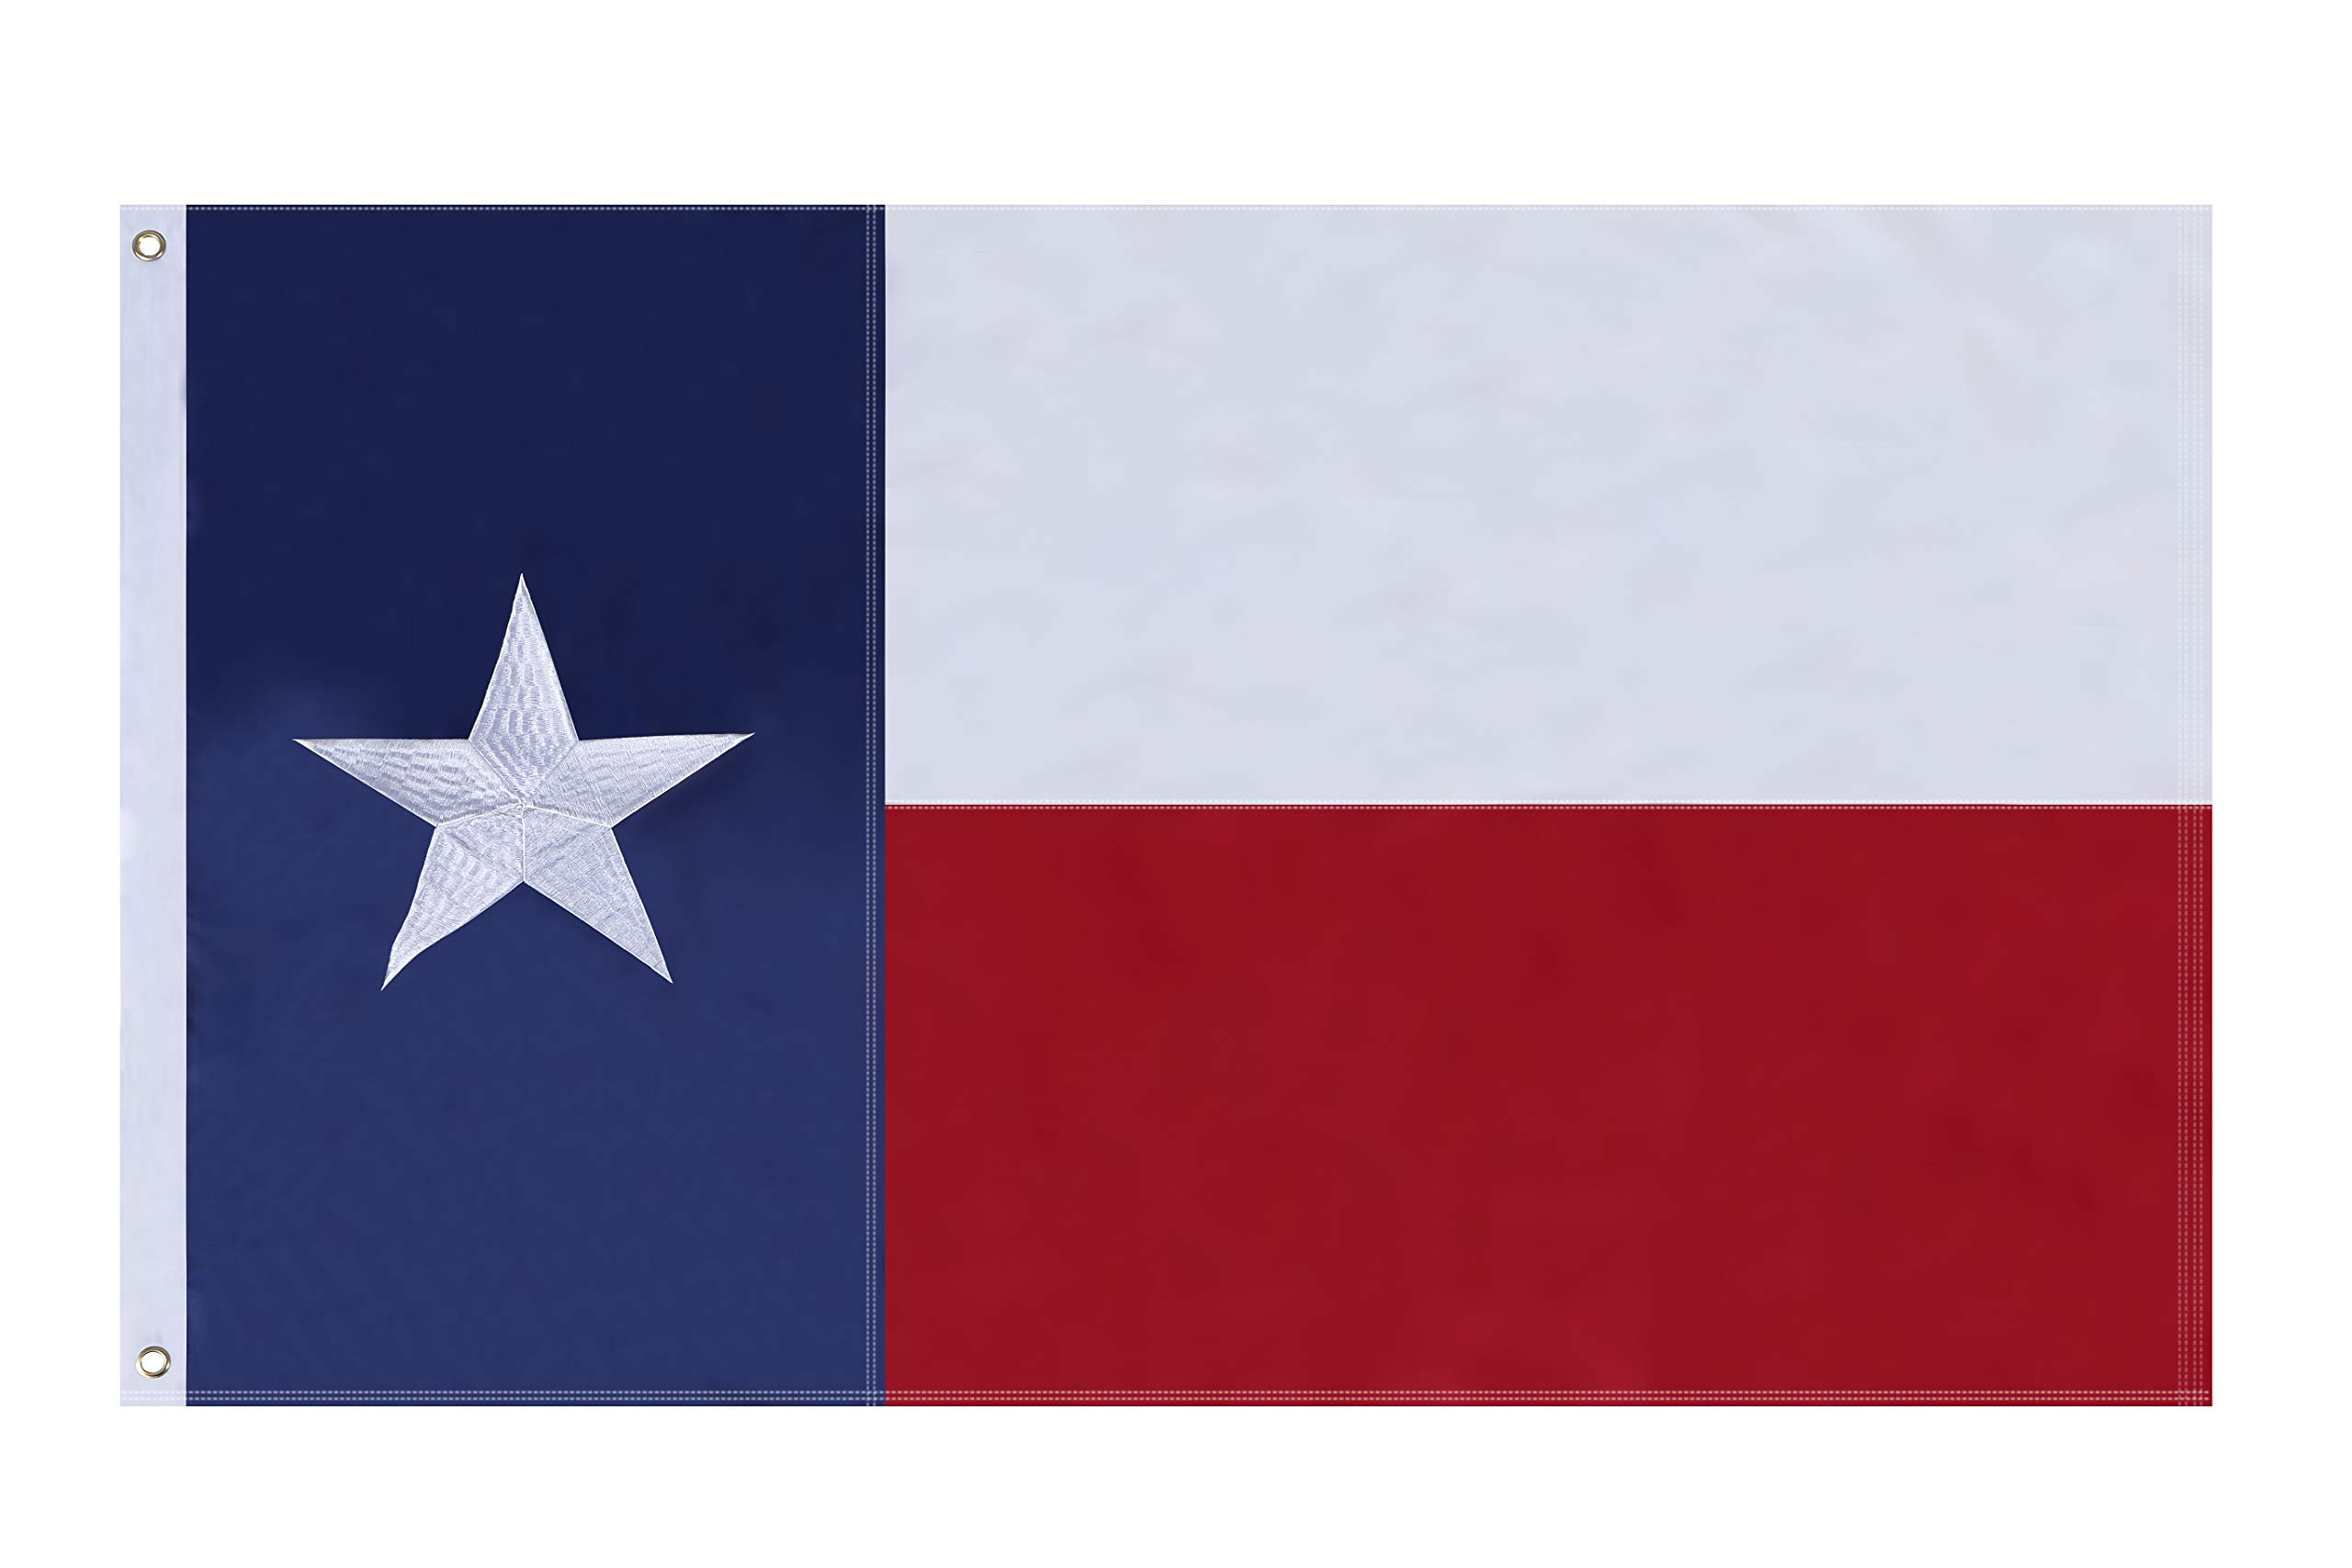 NuLink Texas State Flag 3x5 Ft Embroidered Stars Sewn Stripes Brass Grommets Flag 210D Oxford Nylon for Indoor Outdoor